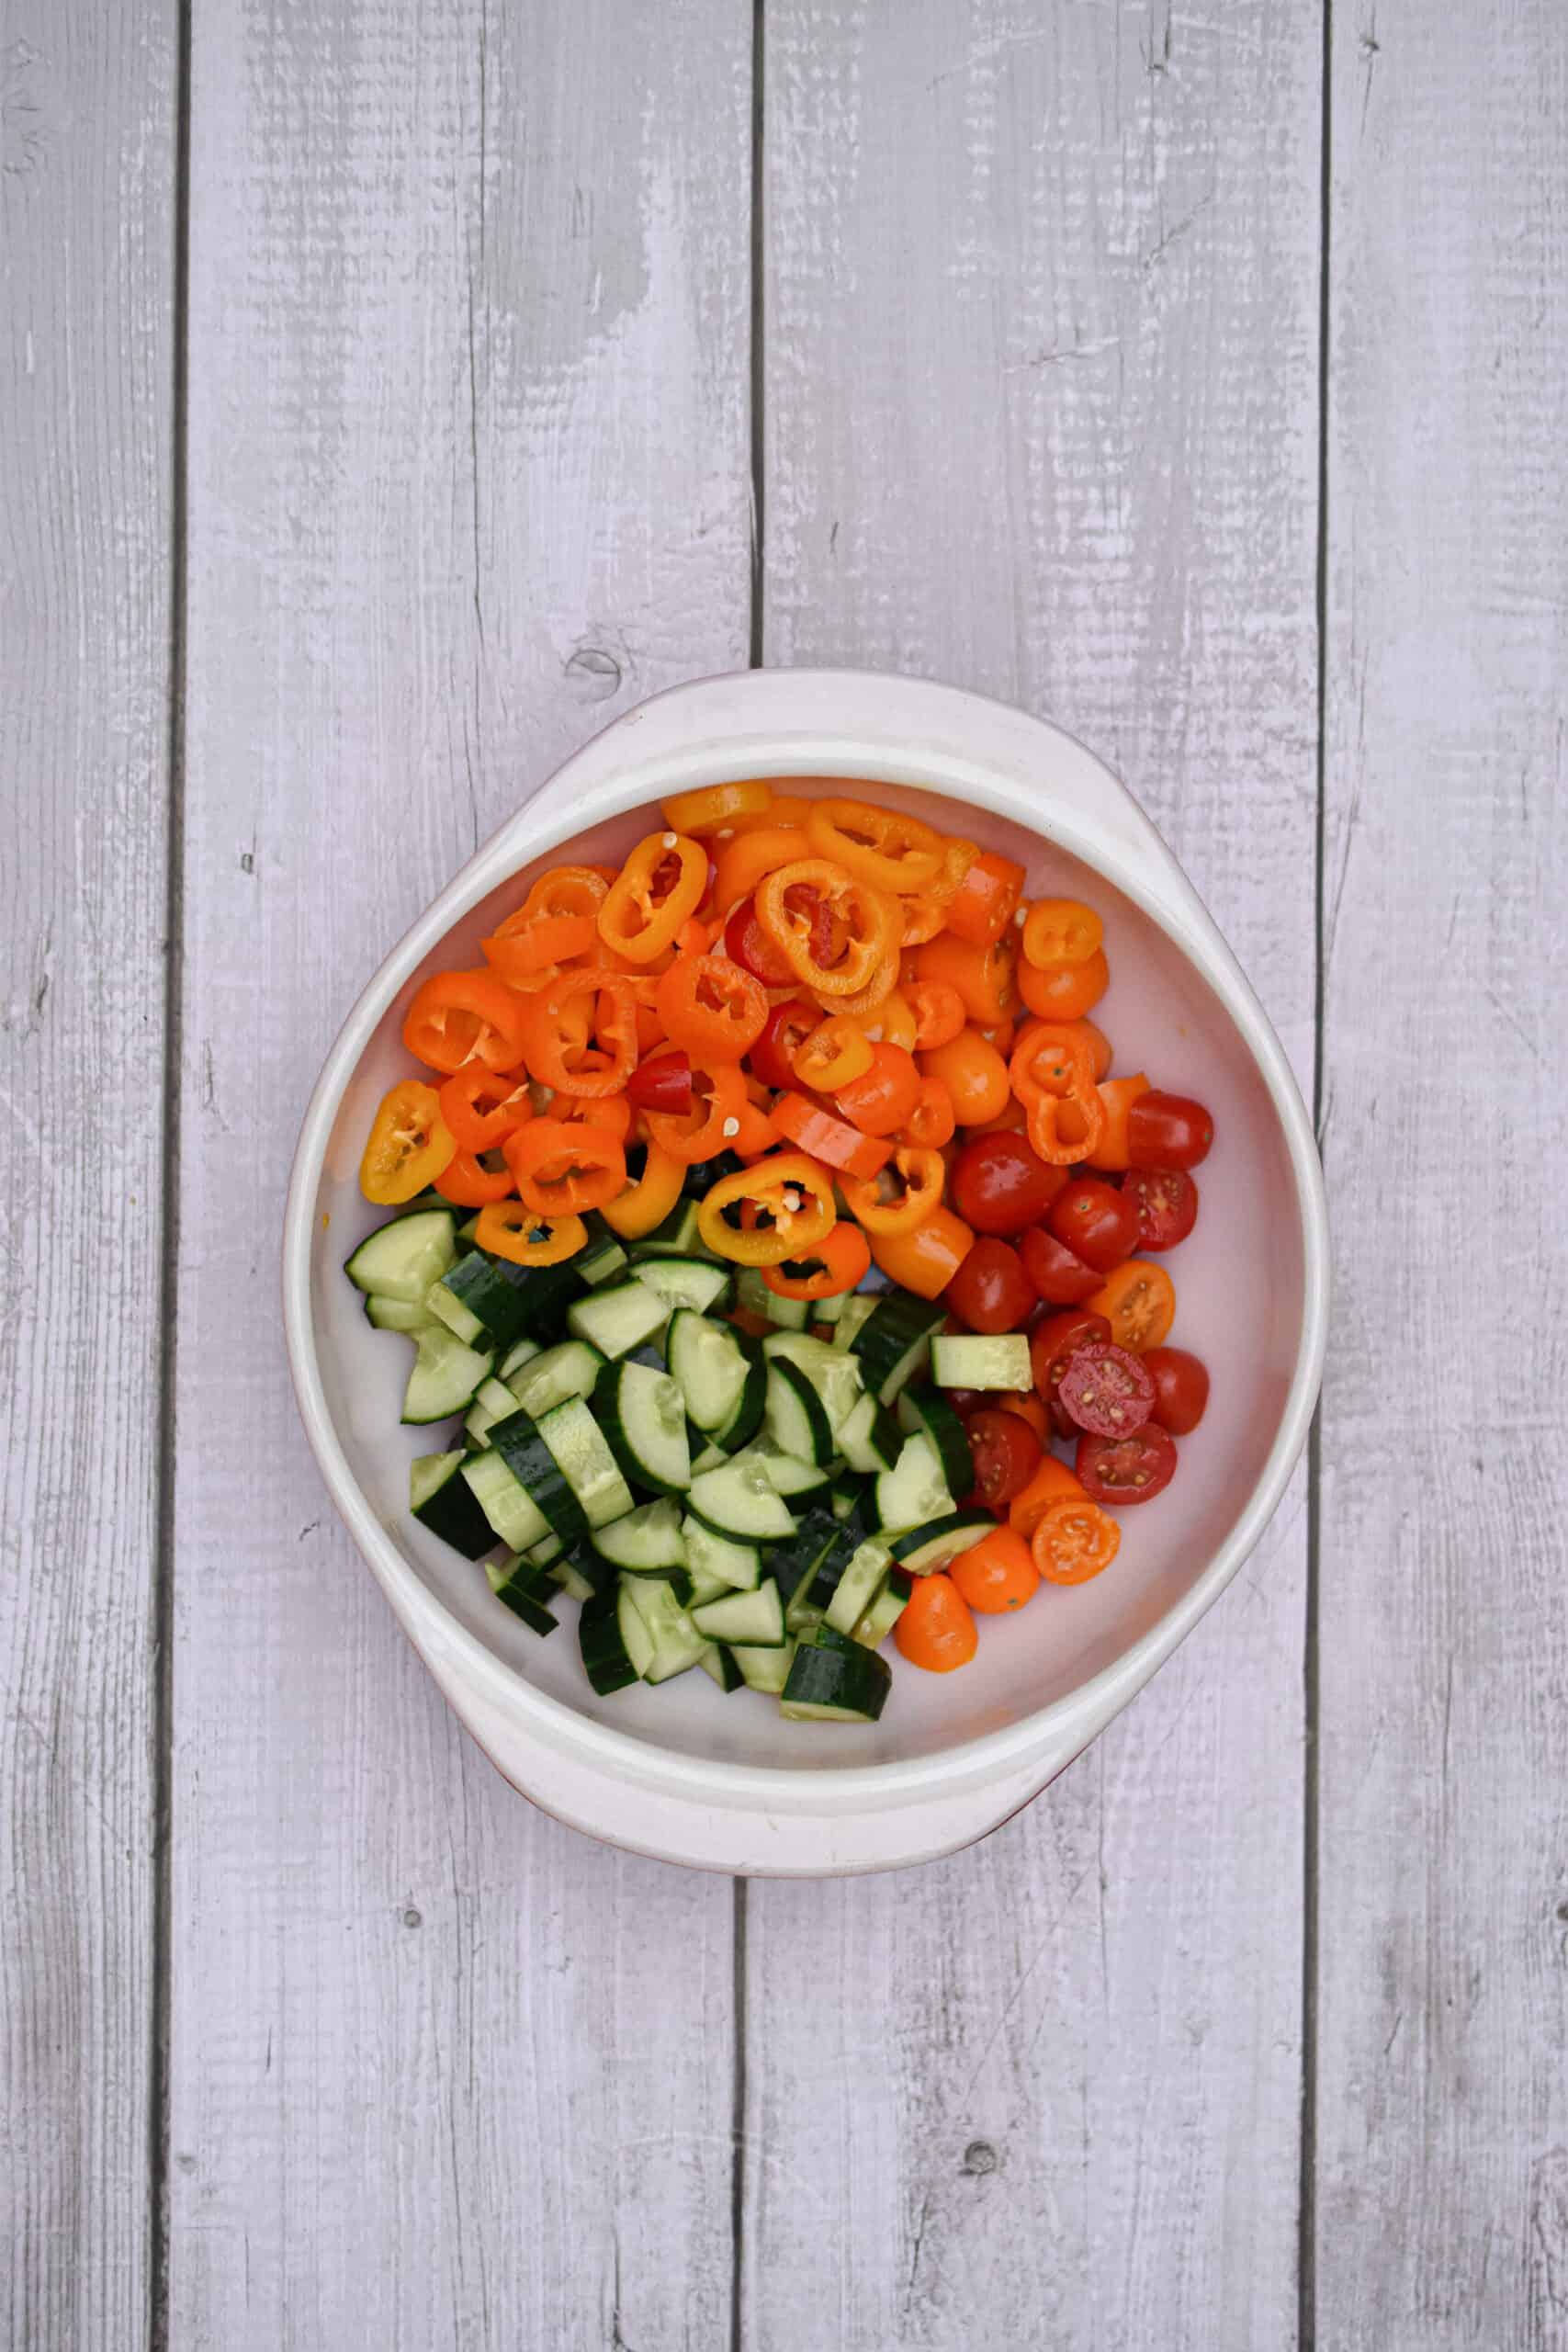 the cut up cucumbers, peppers, and cherry tomatoes are in a bowl